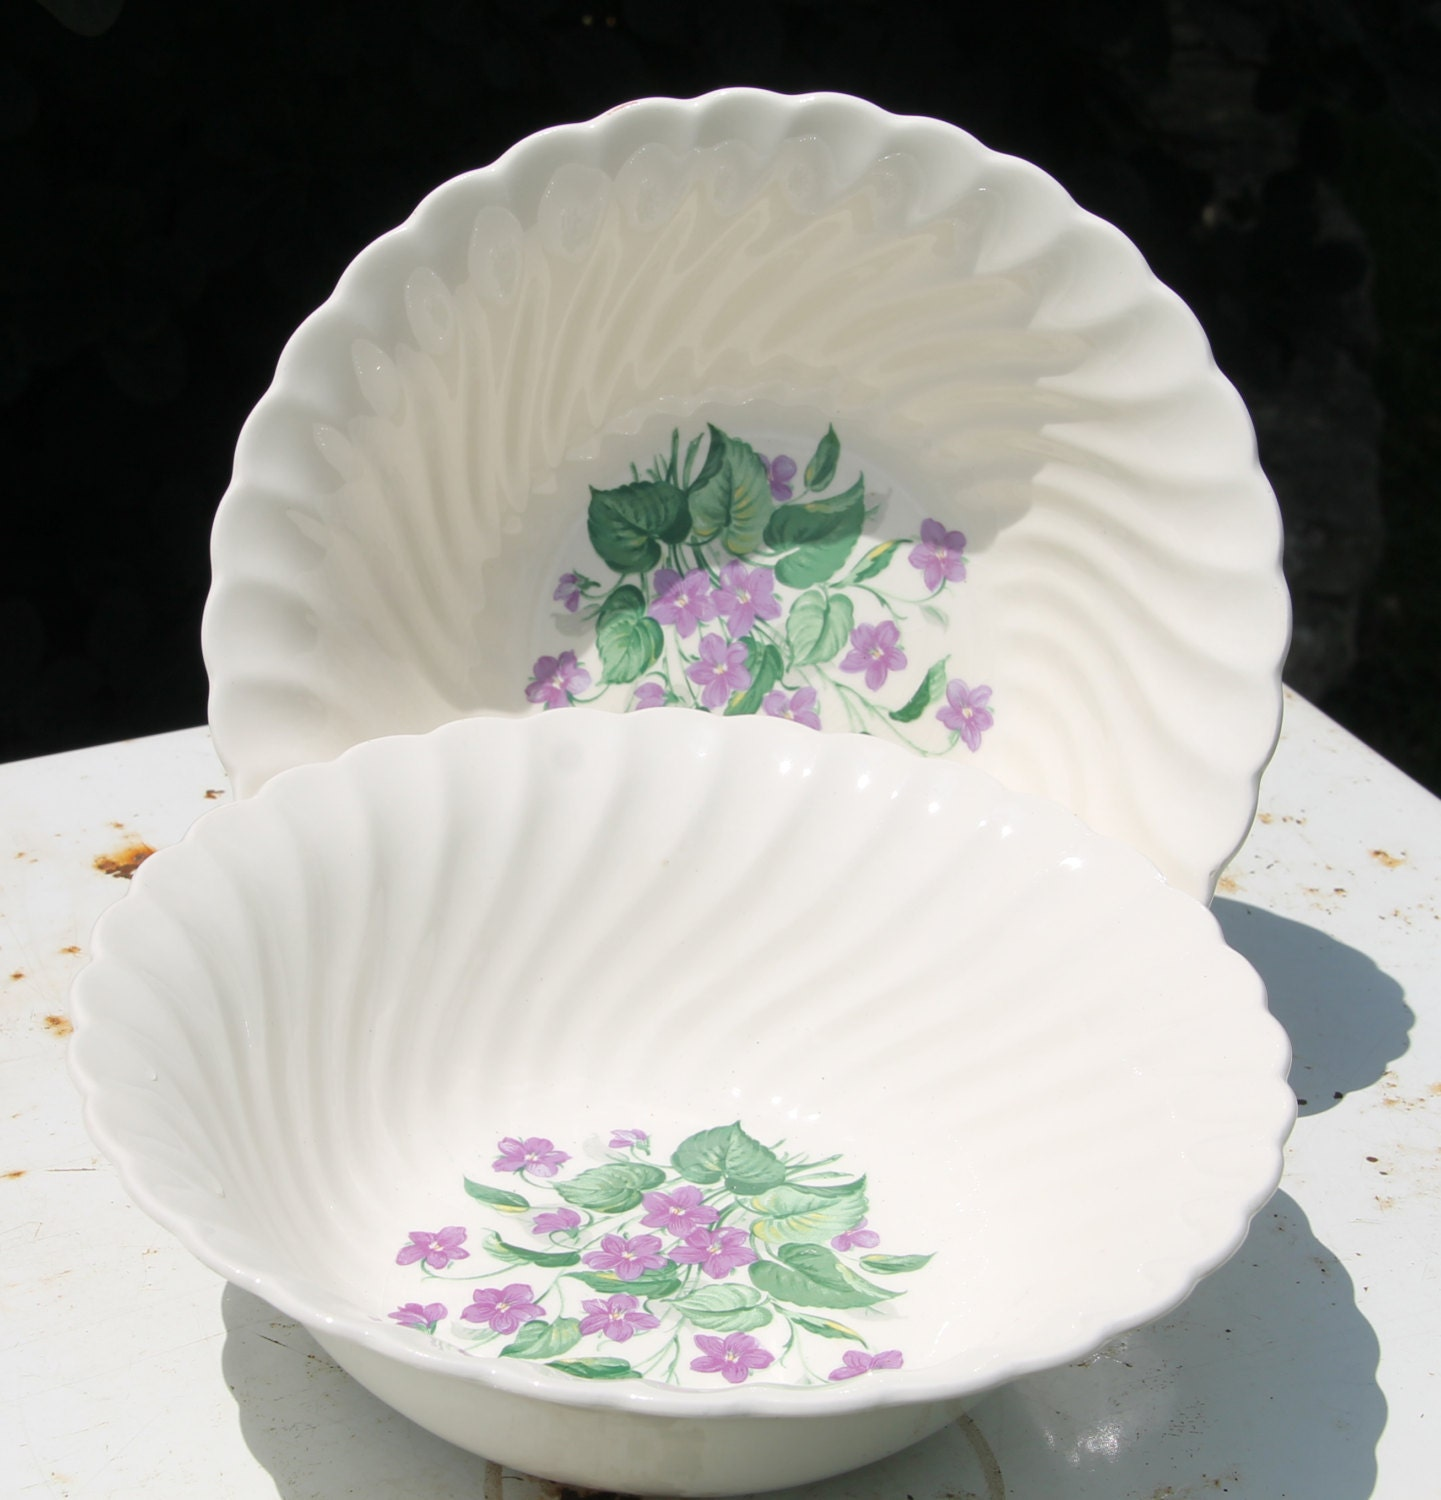 gallery photo gallery photo gallery photo gallery photo gallery photo & Vintage Royal Violet China Serving Bowls by Royal China USA with ...